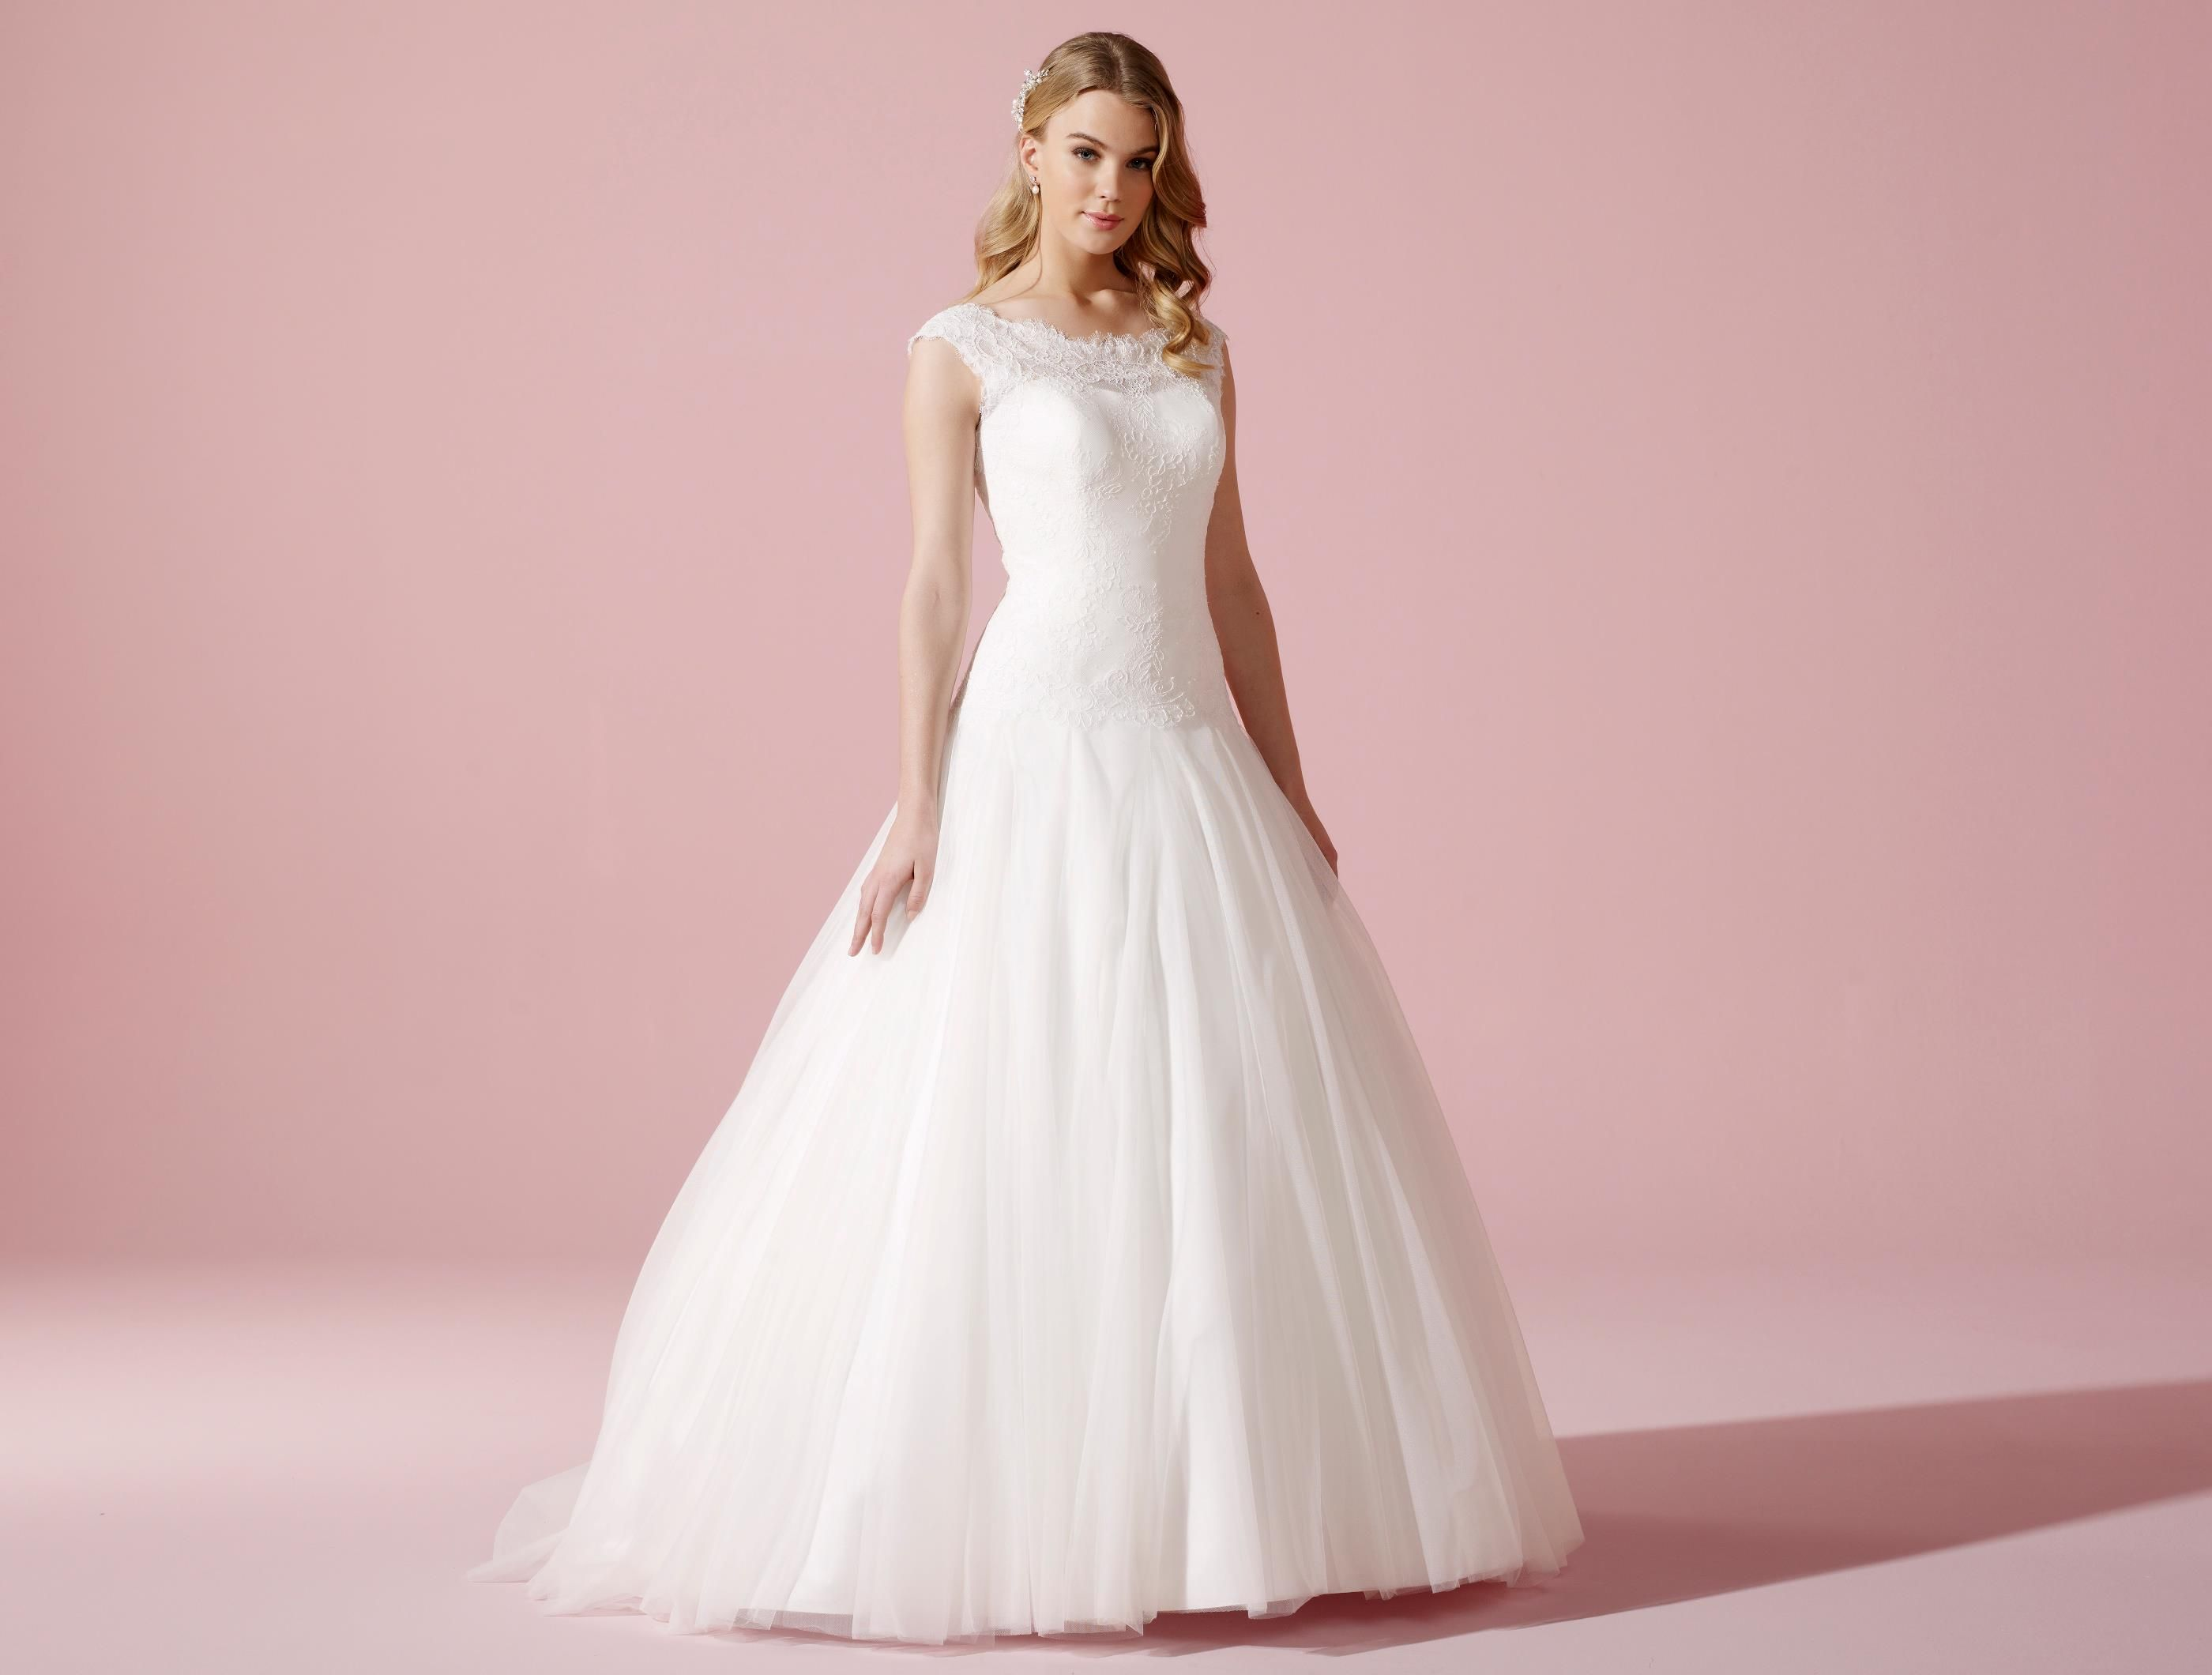 Brautkleid | Brides | Pinterest